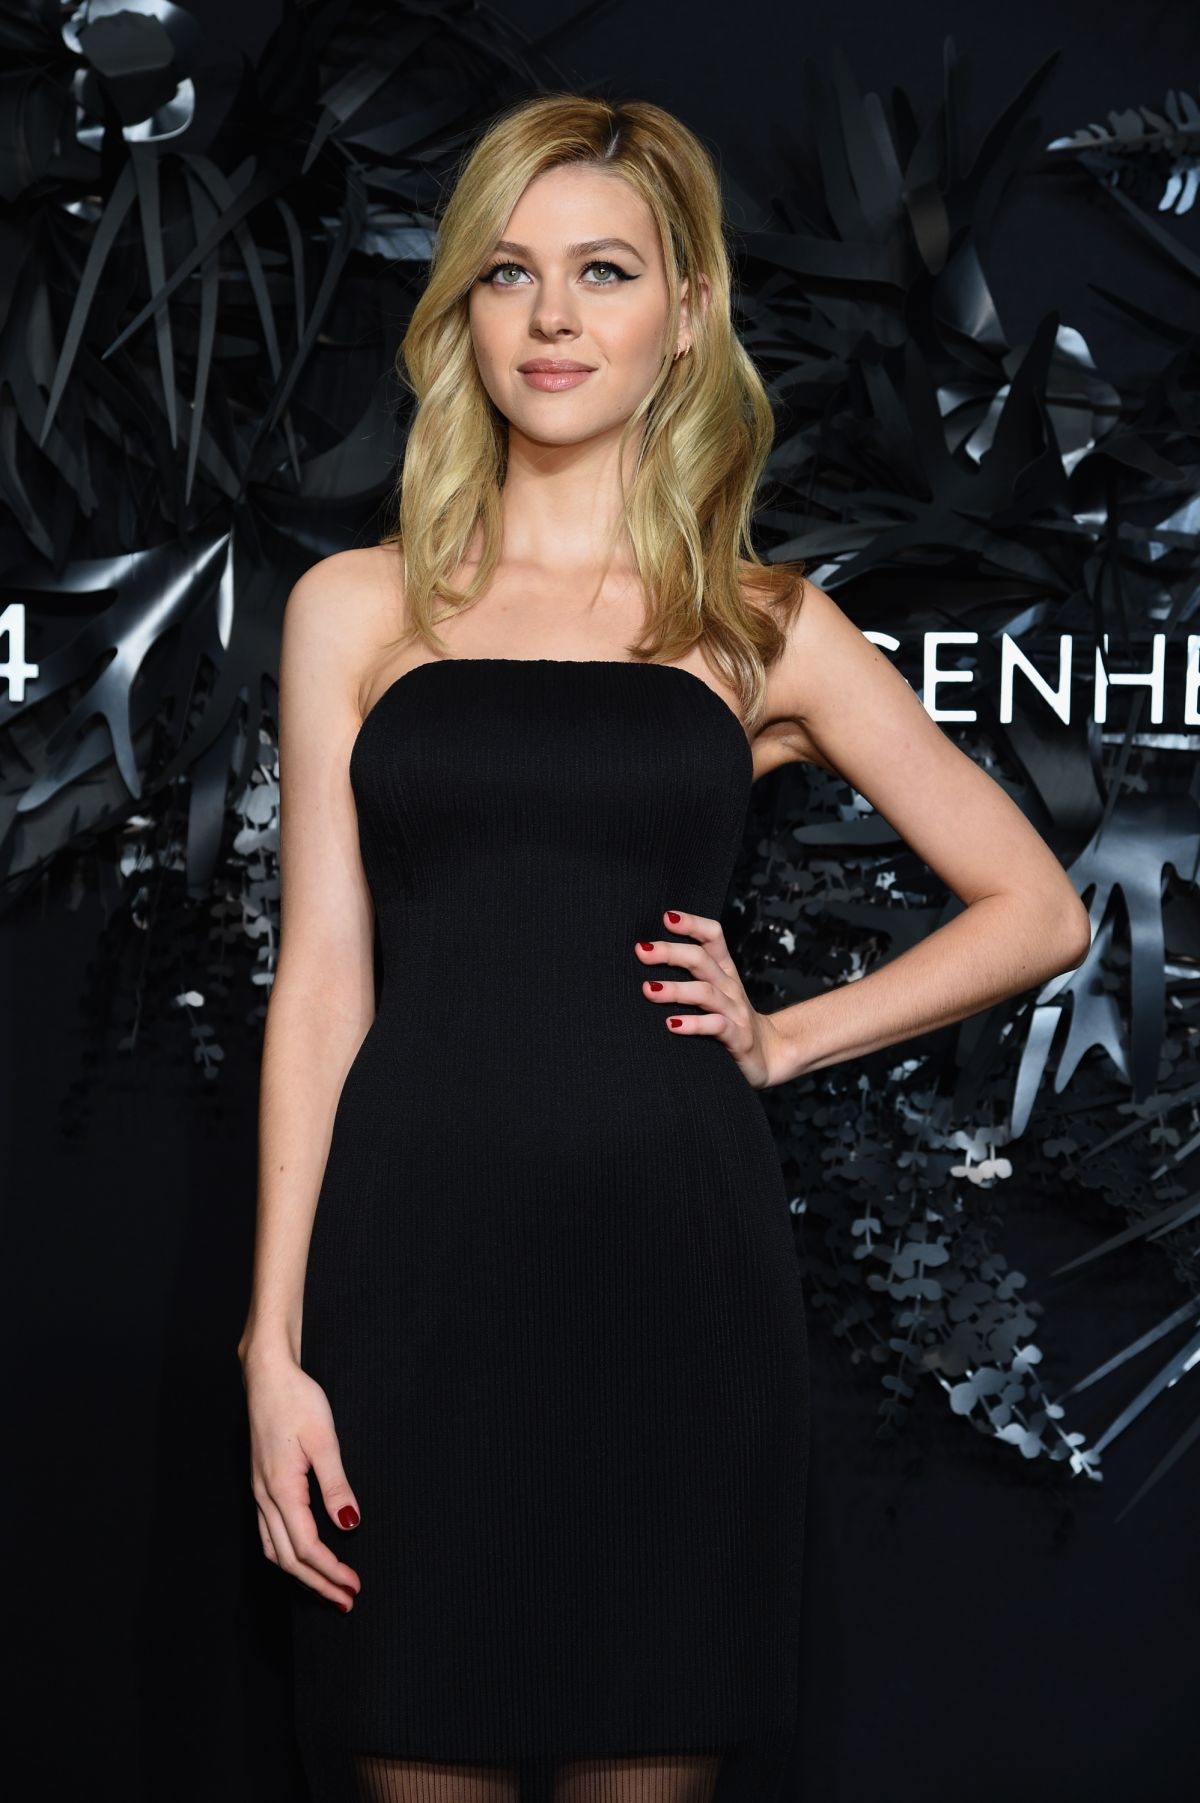 NICOLA PELTZ at 2014 Hugo Boss Prize in New York